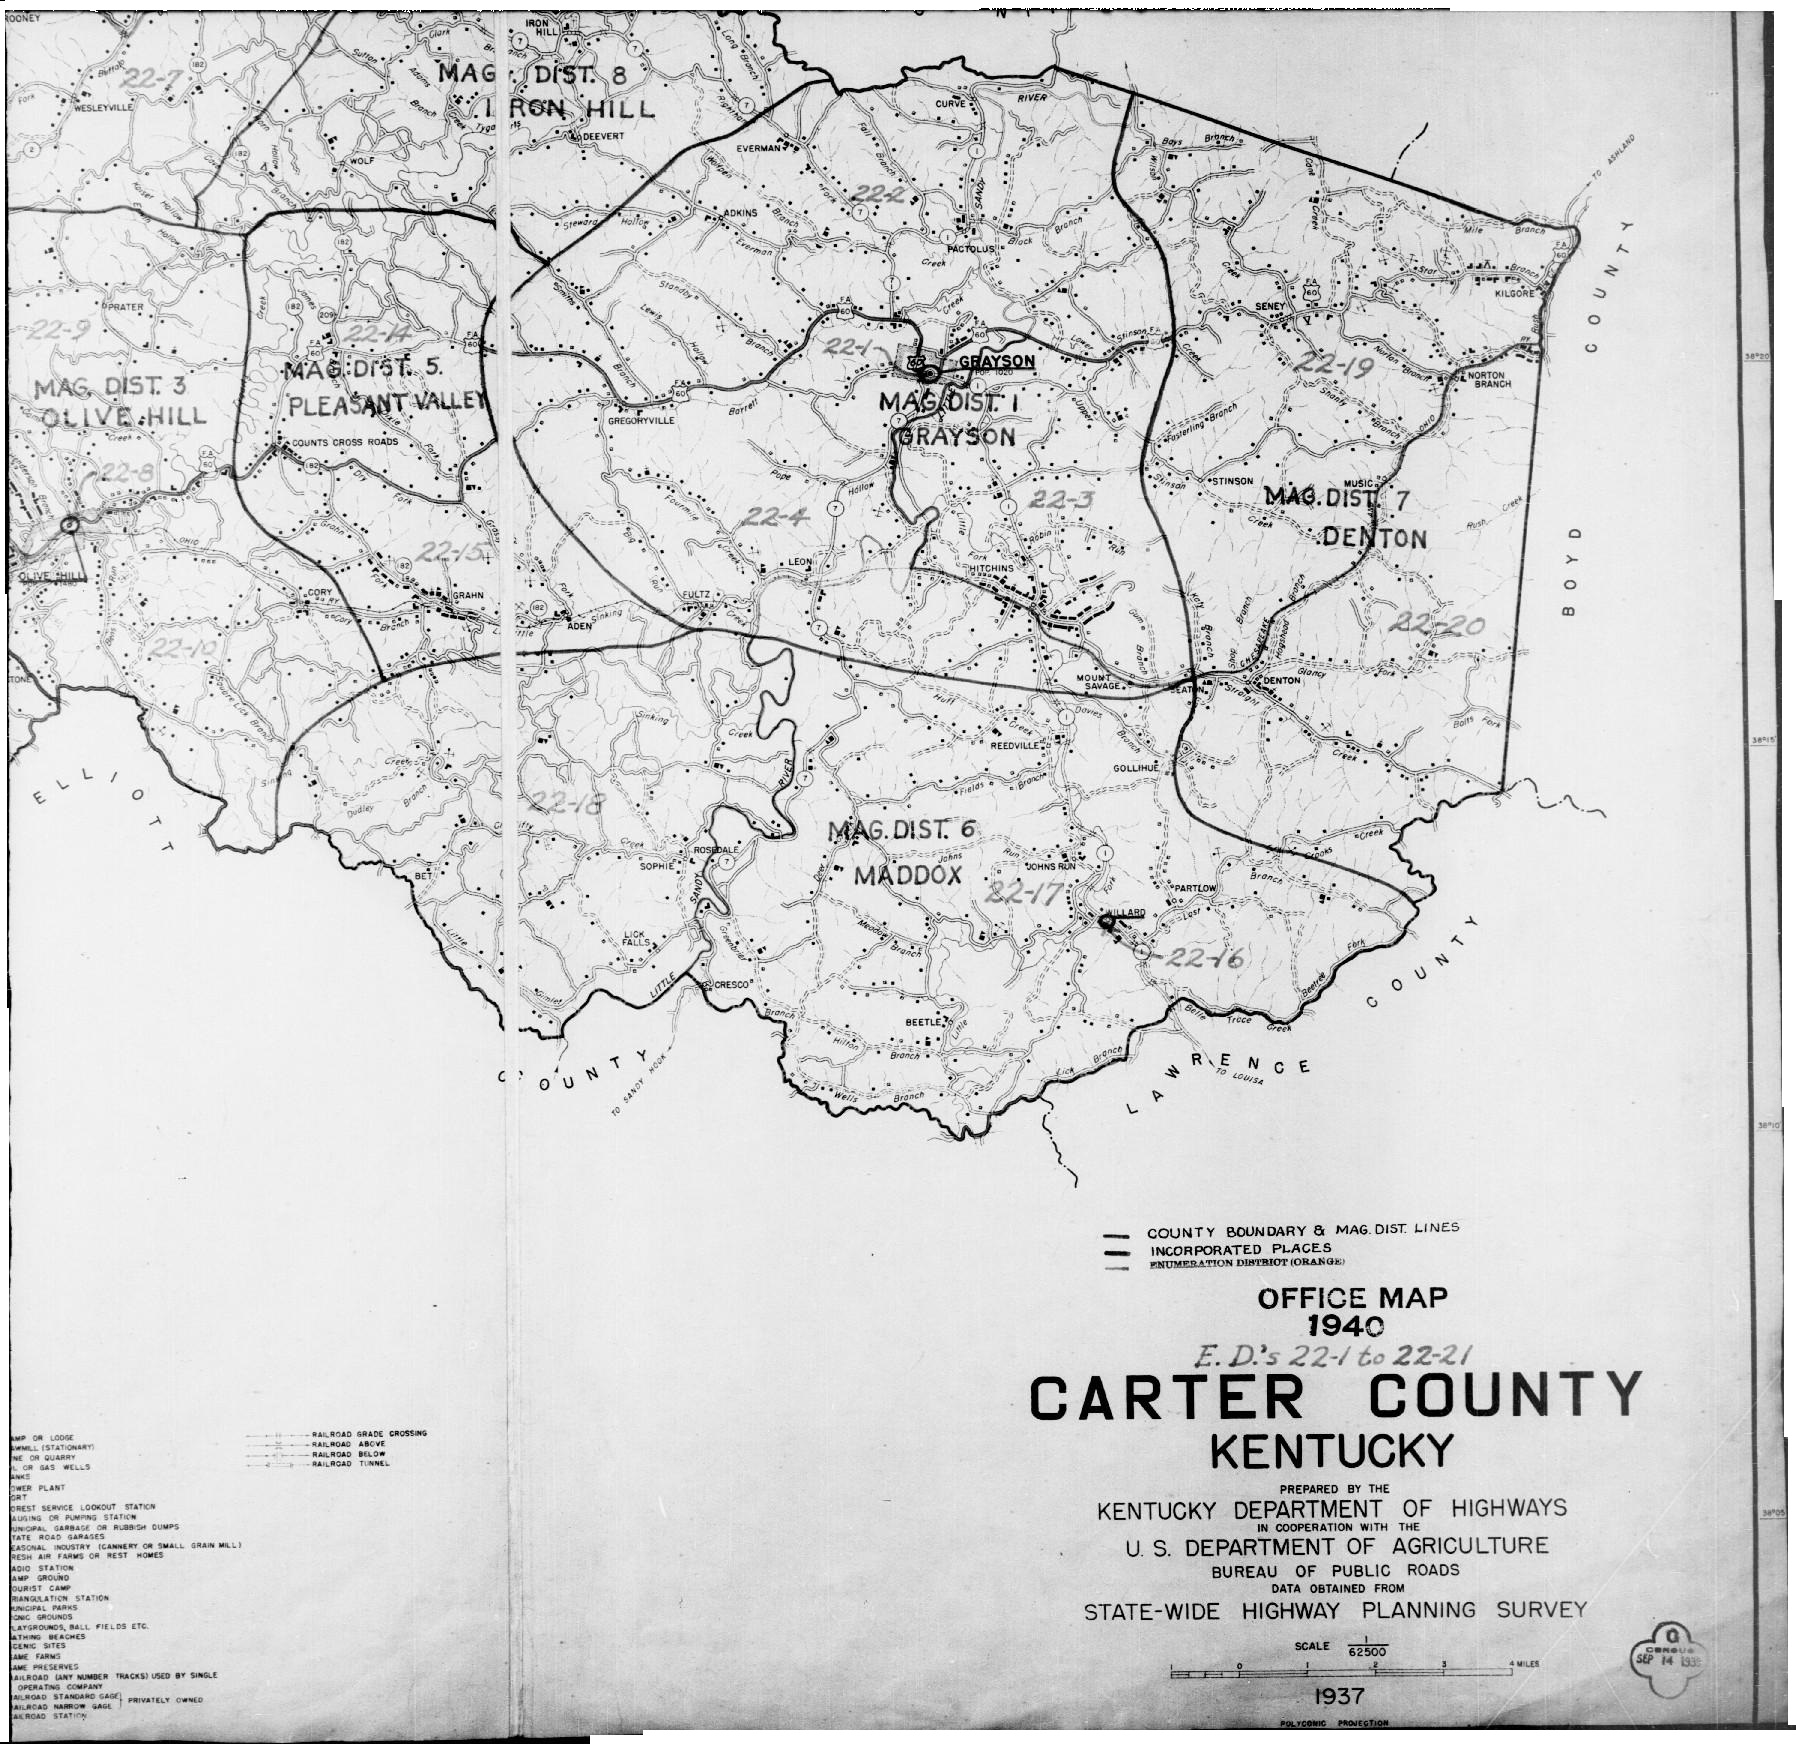 1940 Carter County Map on kentucky map, louisville map, ky co map, ky snow map, ky parkways map, ky airport map, ky hwy map, ky zip code map, ky pipeline map, ky weather map, lebanon ky map, paducah ky map, knox county ne platte map, ky city map, nicholasville ky map, florence ky map, ky district map, ky tn map, ky river map, ky state map,